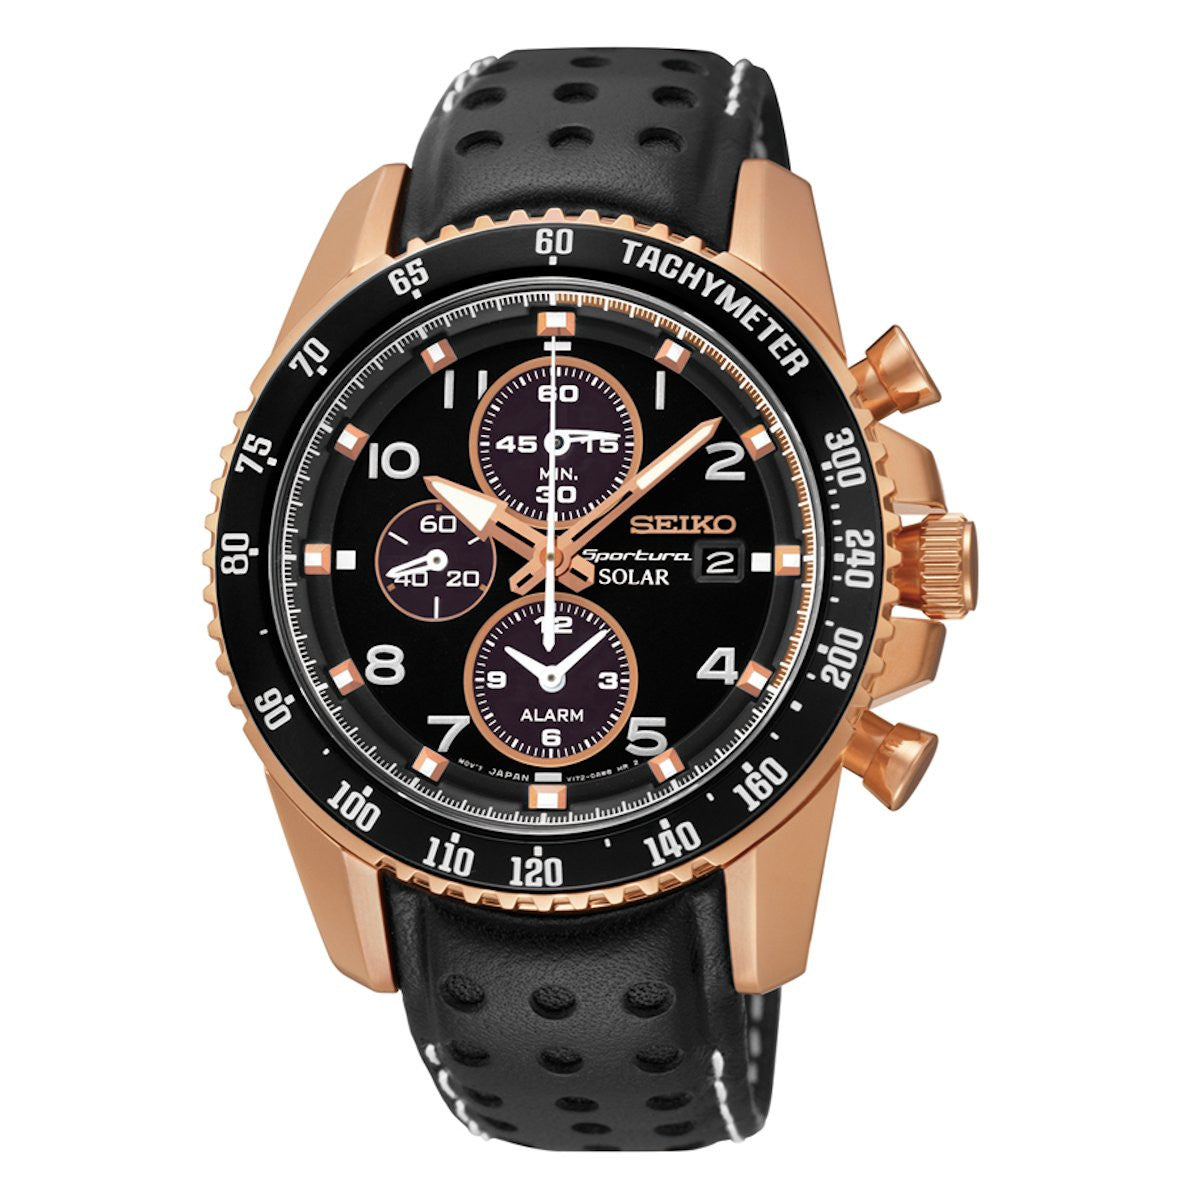 seiko men s 45mm chronograph rose gold tone wrist watch stainless seiko men s 45mm chronograph rose gold tone wrist watch stainless steel ssc274 trustmark